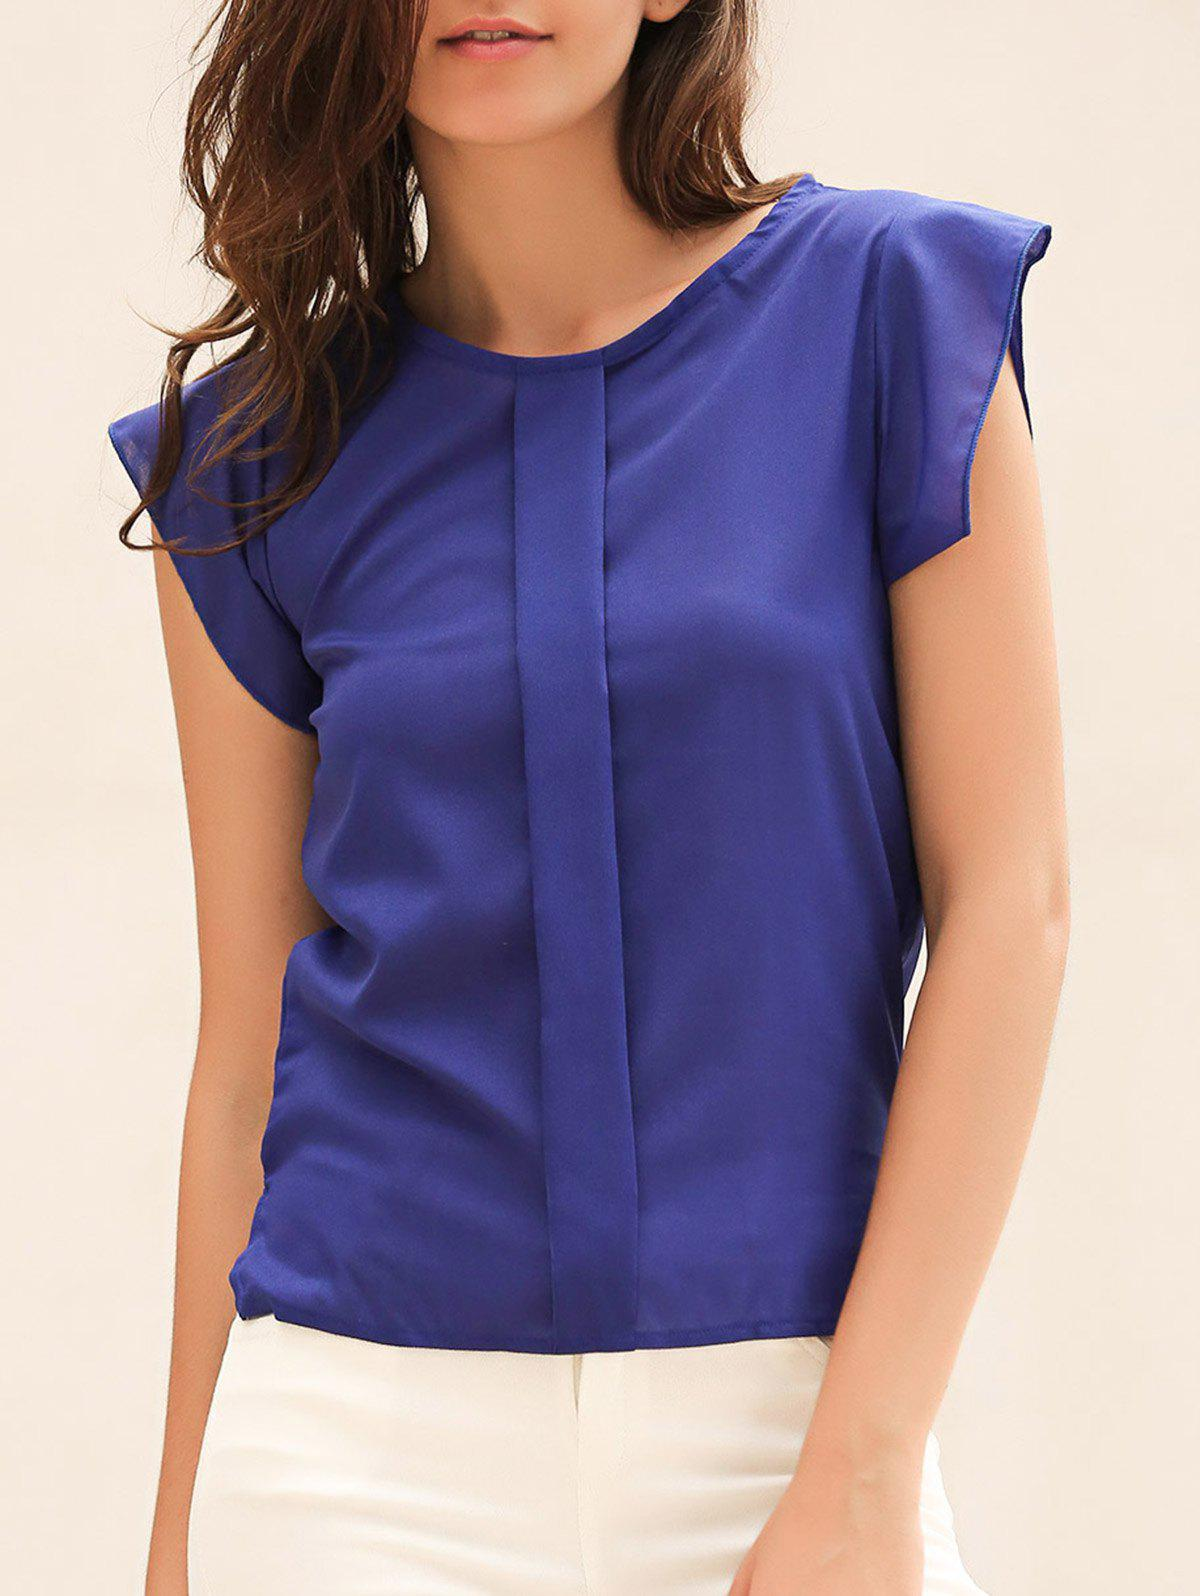 Candy Color Loose Leisure Women's Chiffon Short Tulip Sleeve Blouse Tops - BLUE L